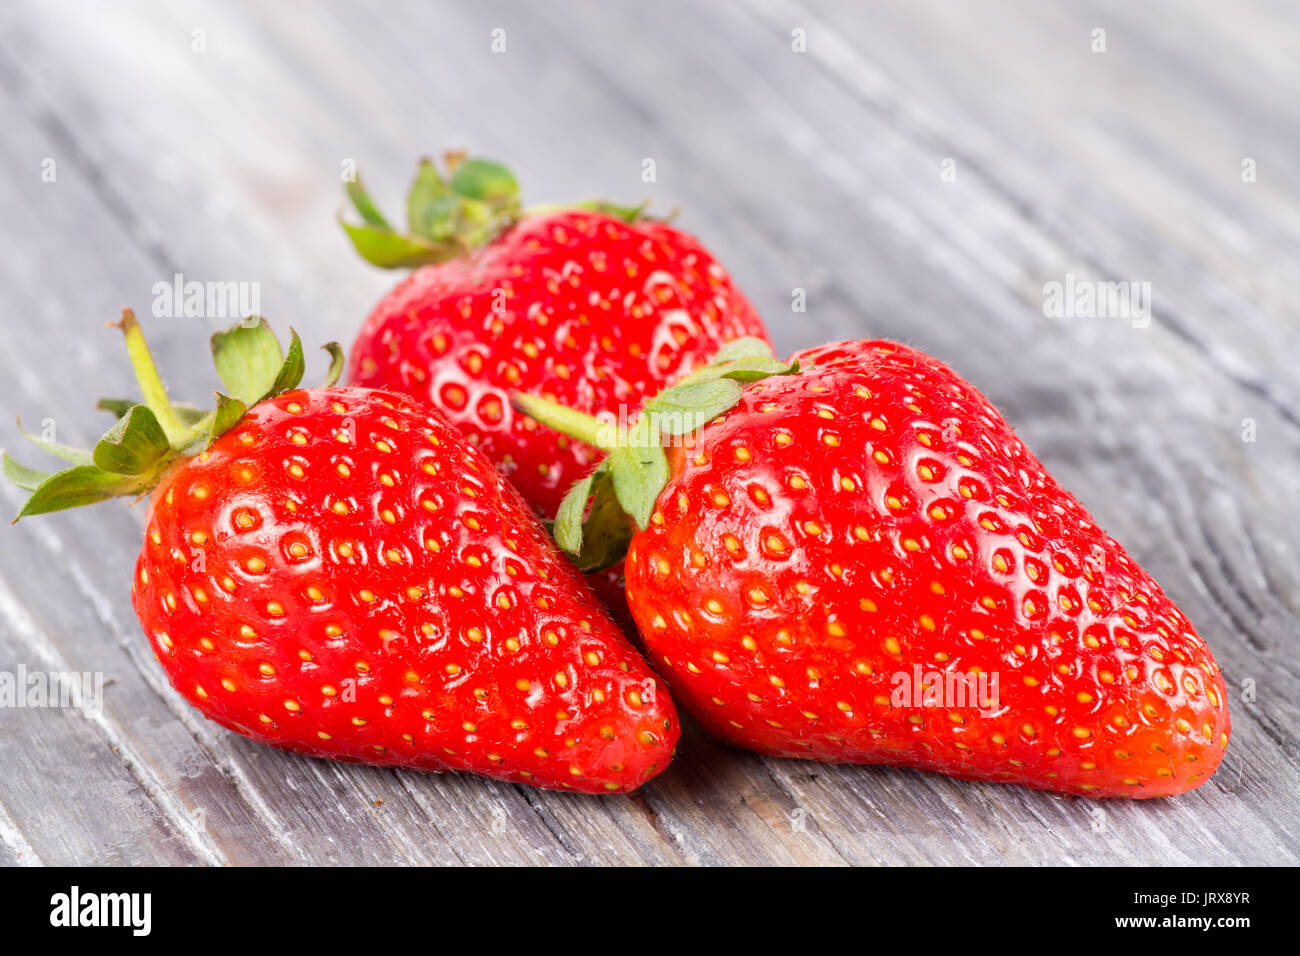 strawberries on wooden background fresh and ripe - Stock Image